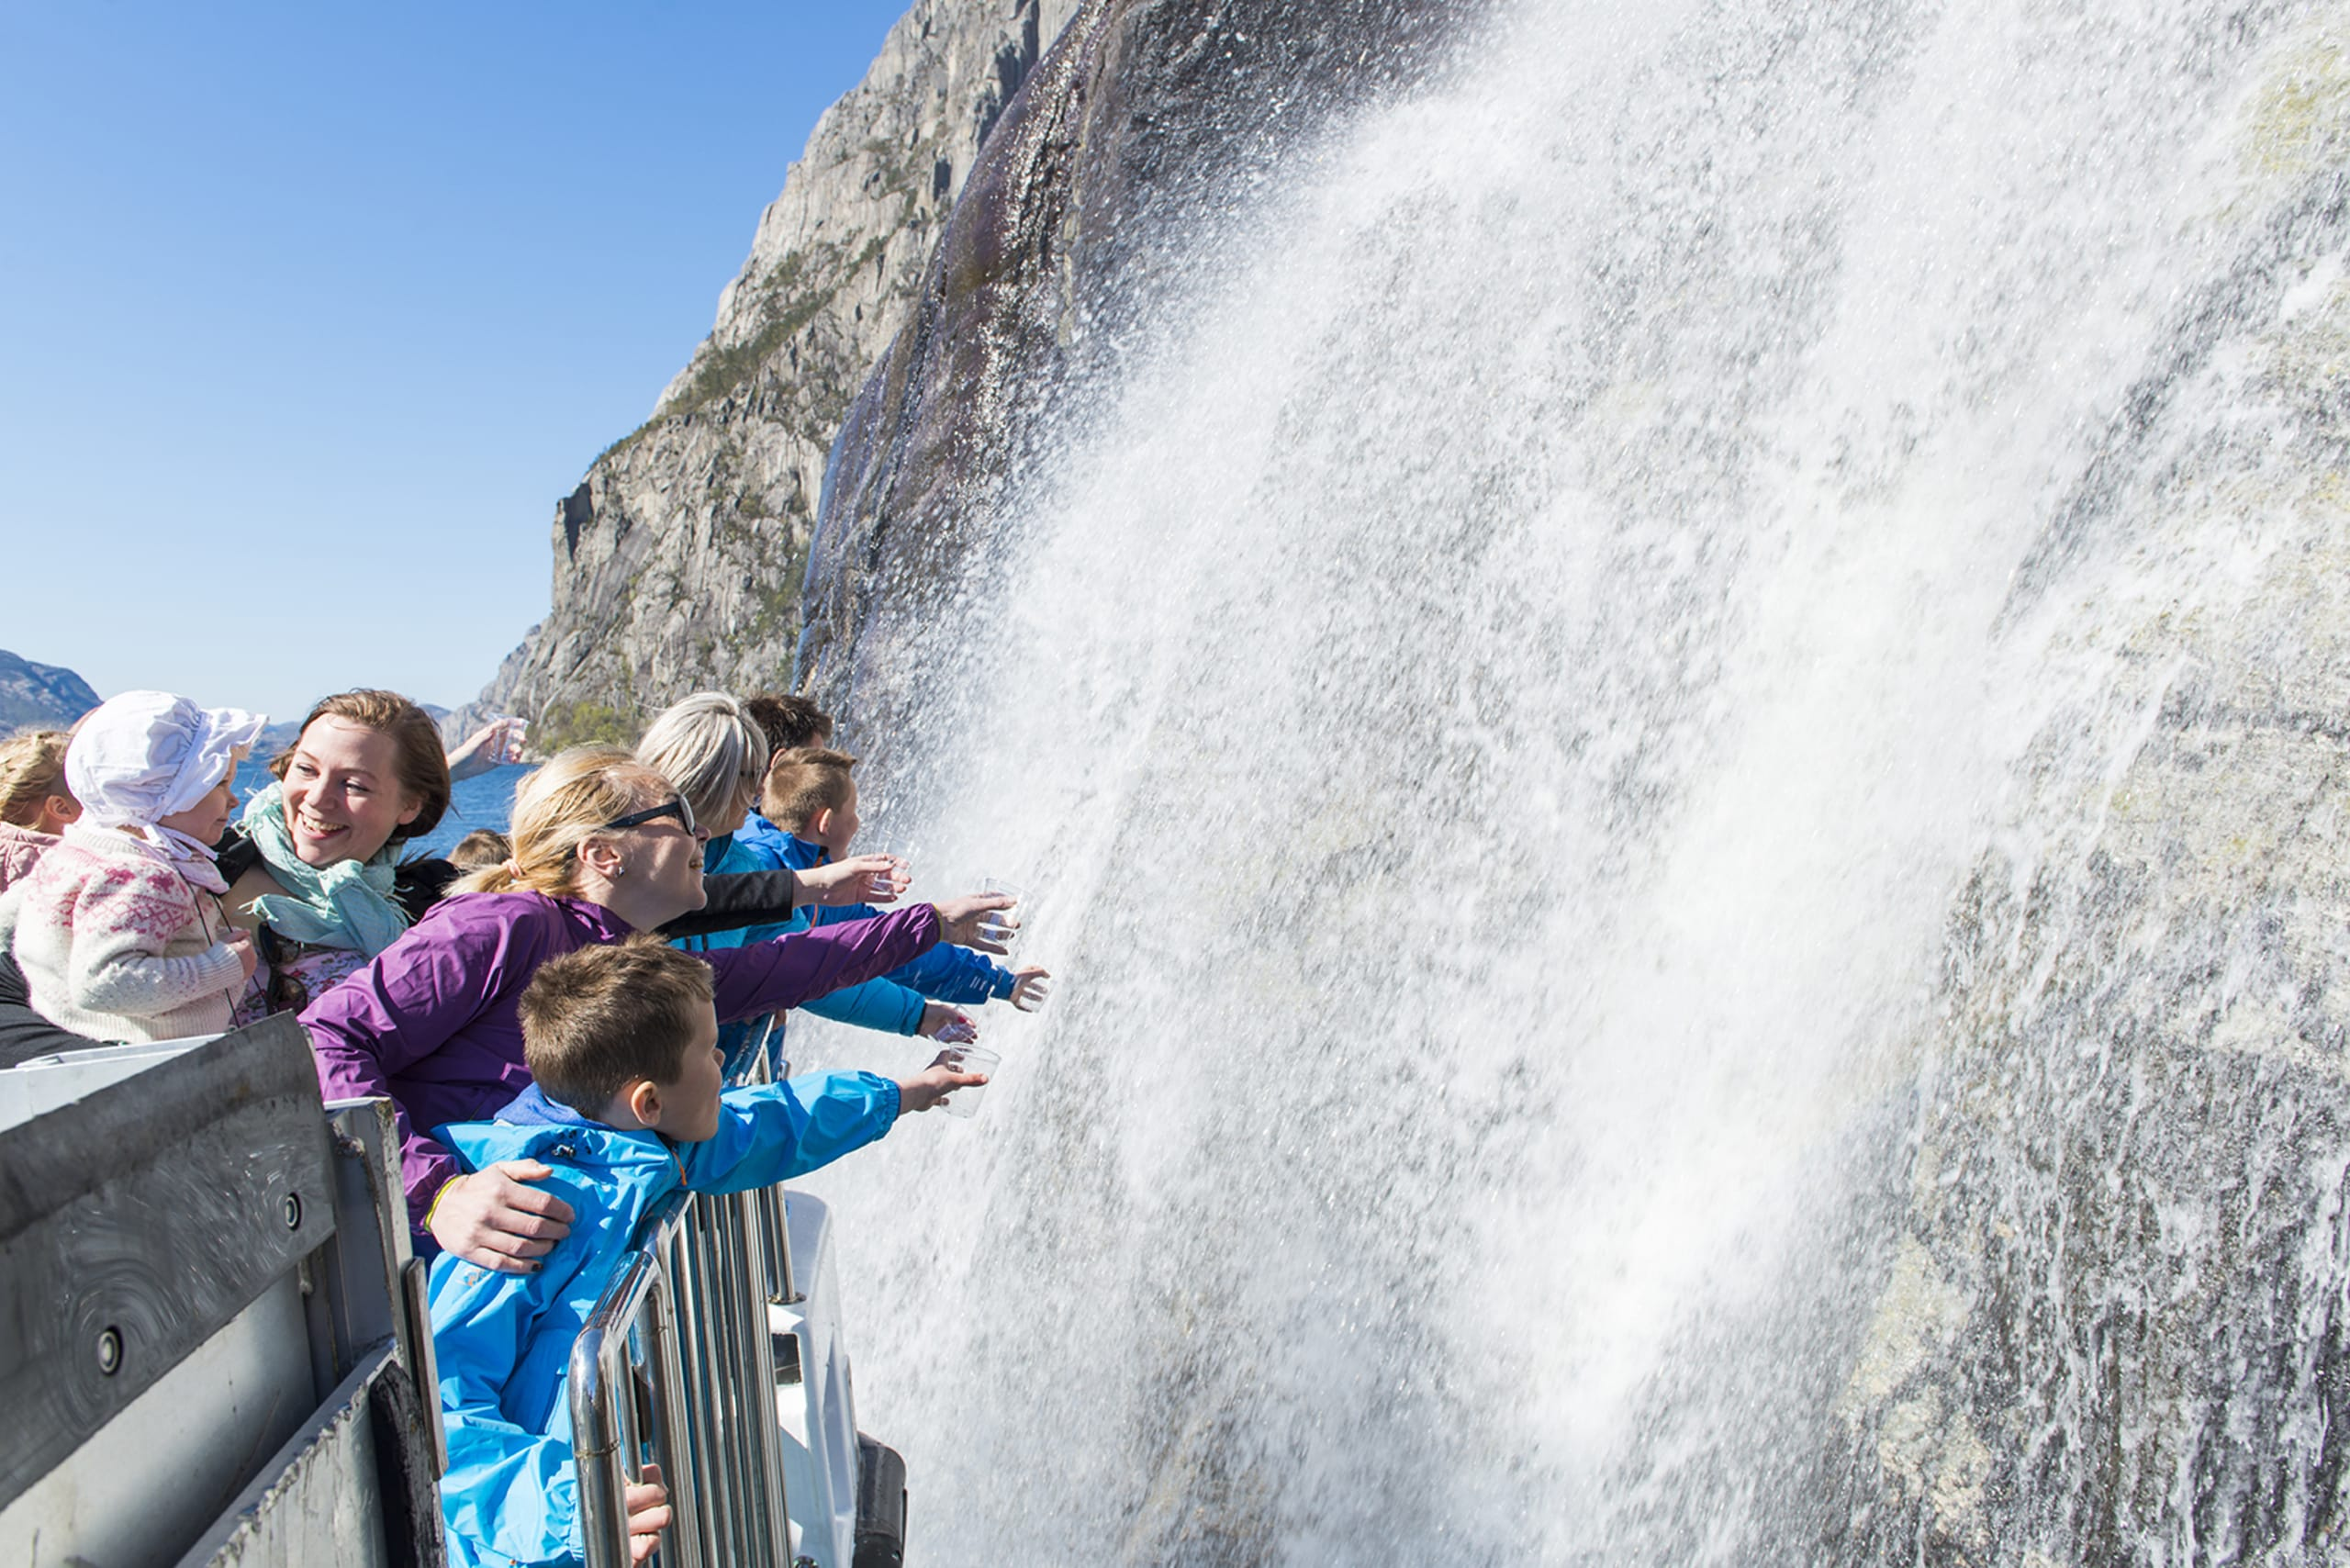 Tourists reaching for the fresh waterfall water from a cruise boat by Hengjane falls in the Lysefjord.